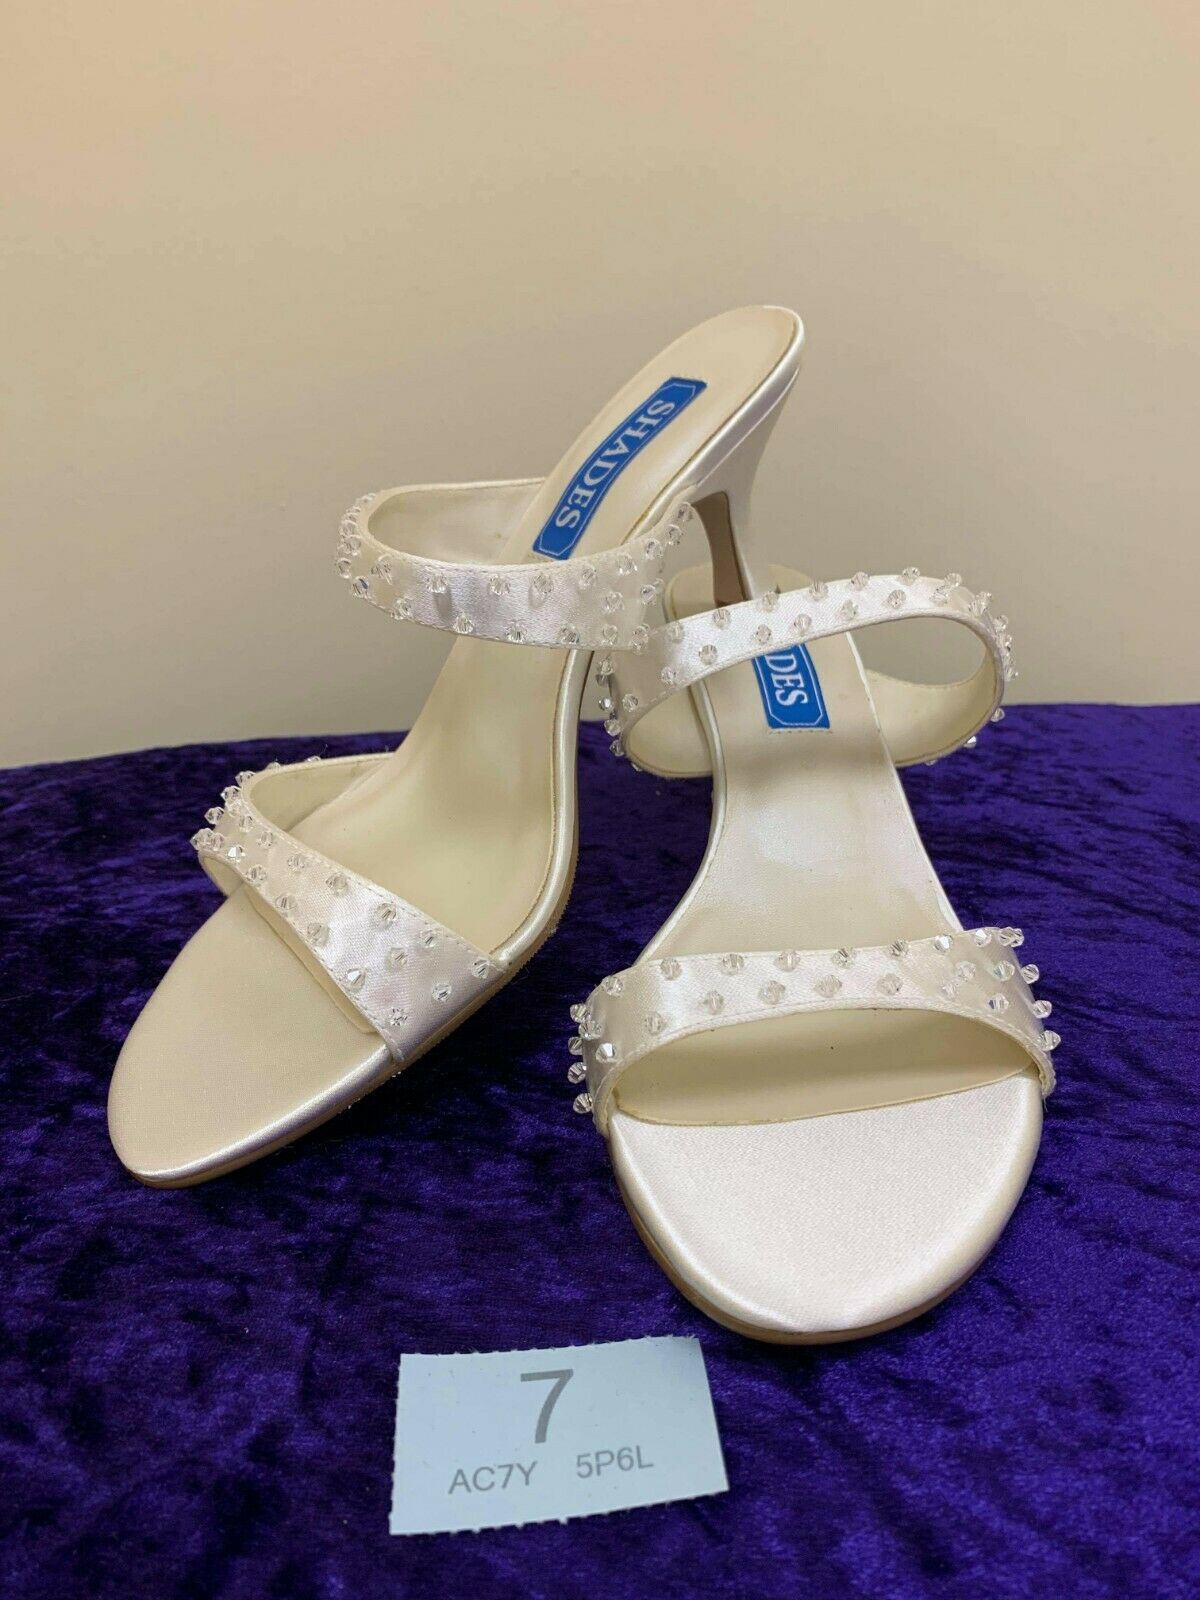 New in box Shades ivory wedding shoes size 6 Style 874 Code 7